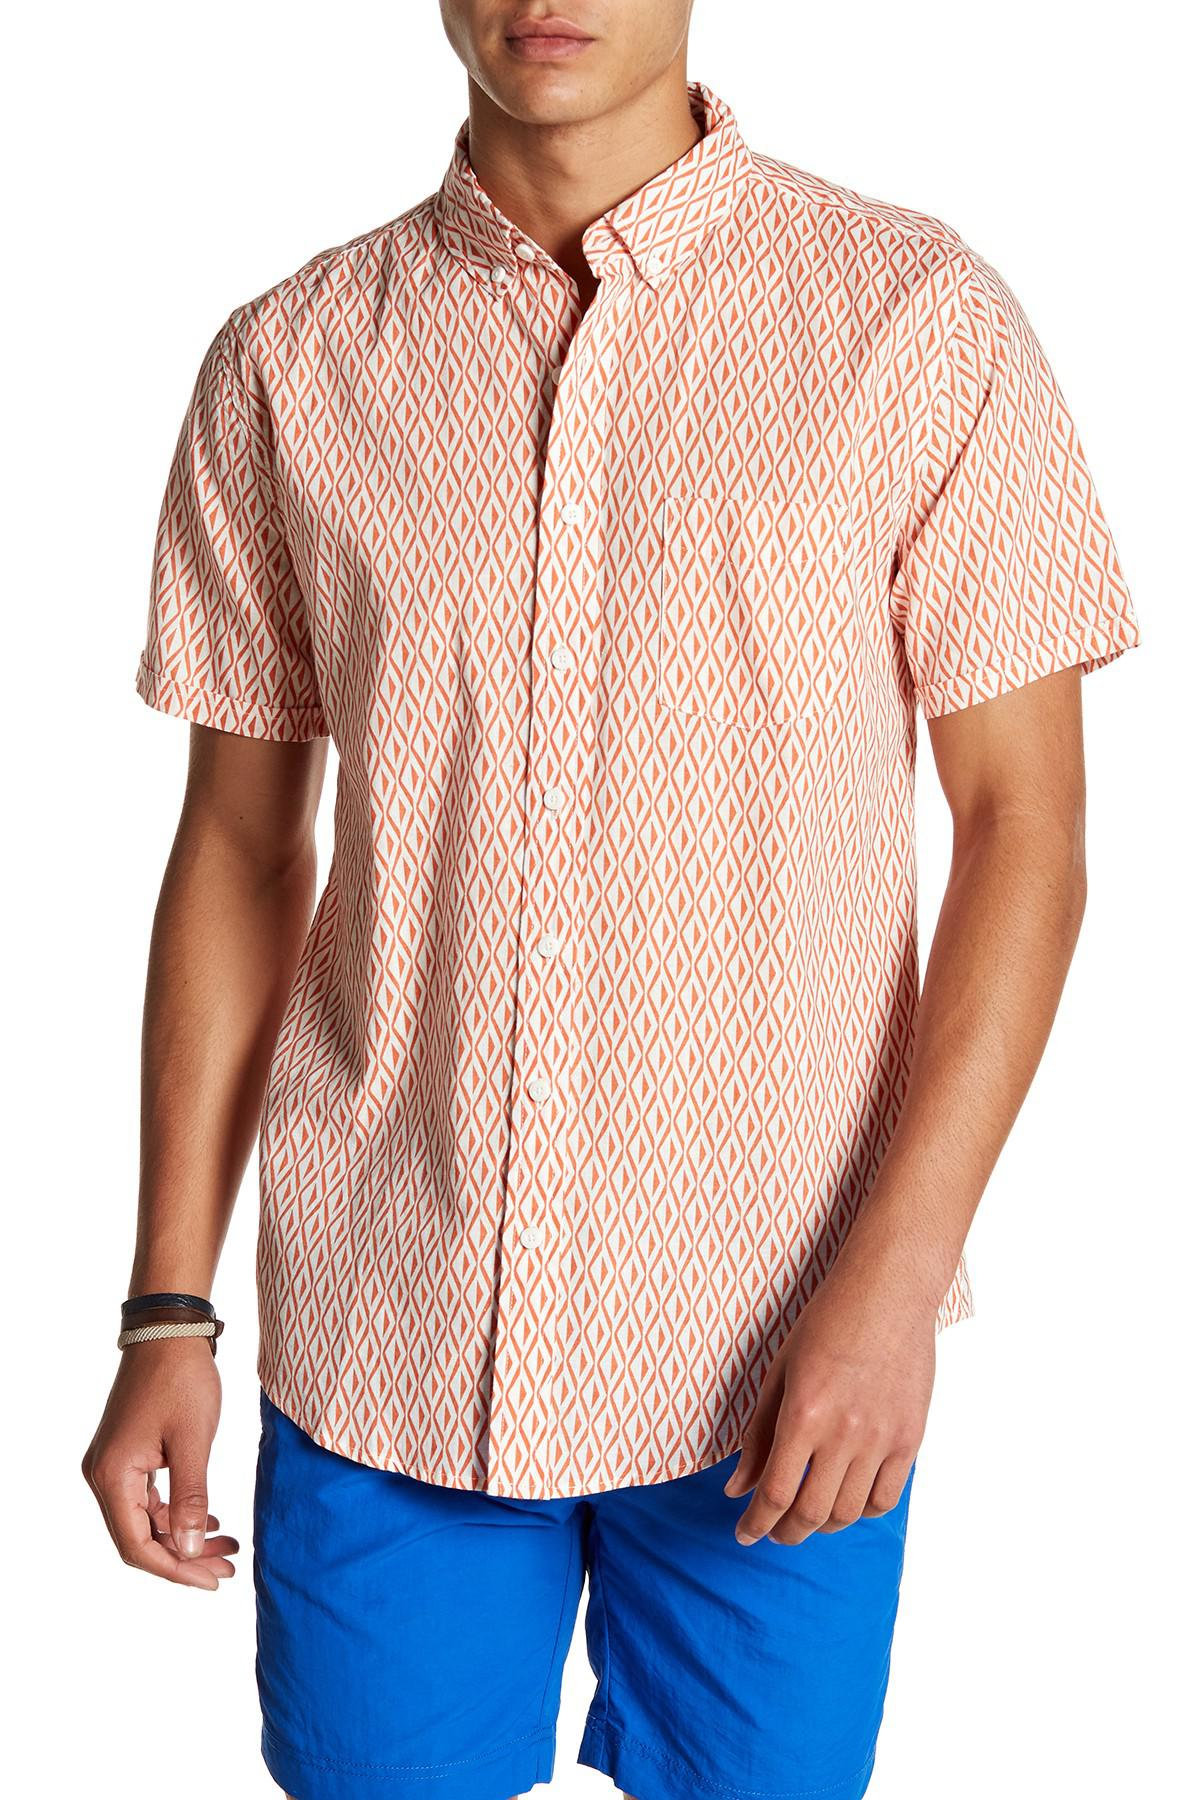 e7da30ba93 Lyst - Onia Jack Print Short Sleeve Trim Fit Linen Shirt for Men